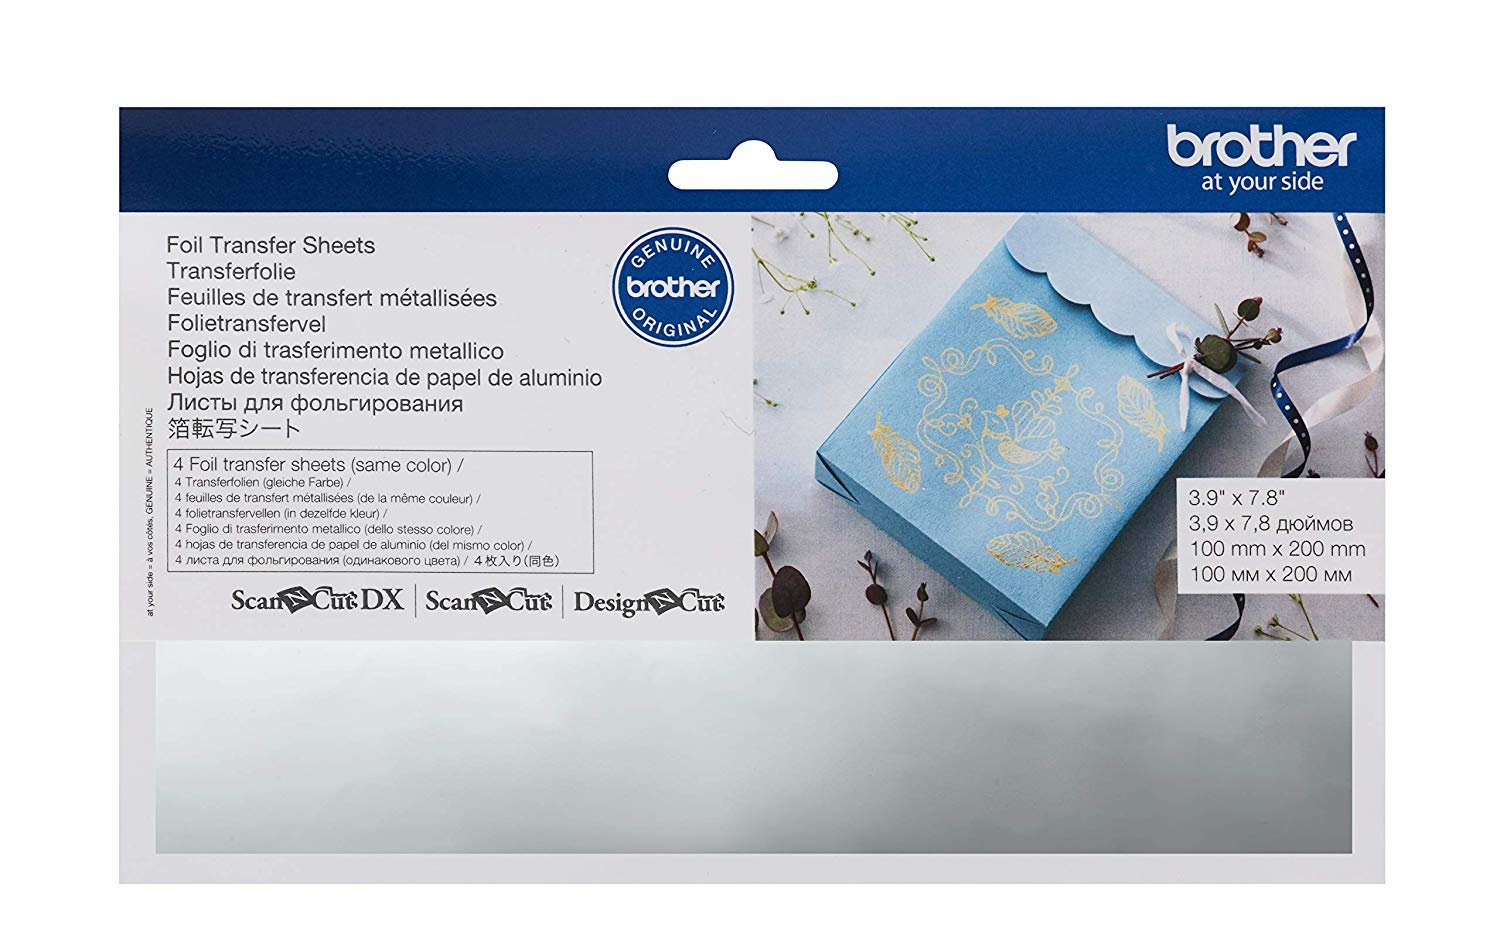 Brother ScanNcut Foil Transfer Sheets